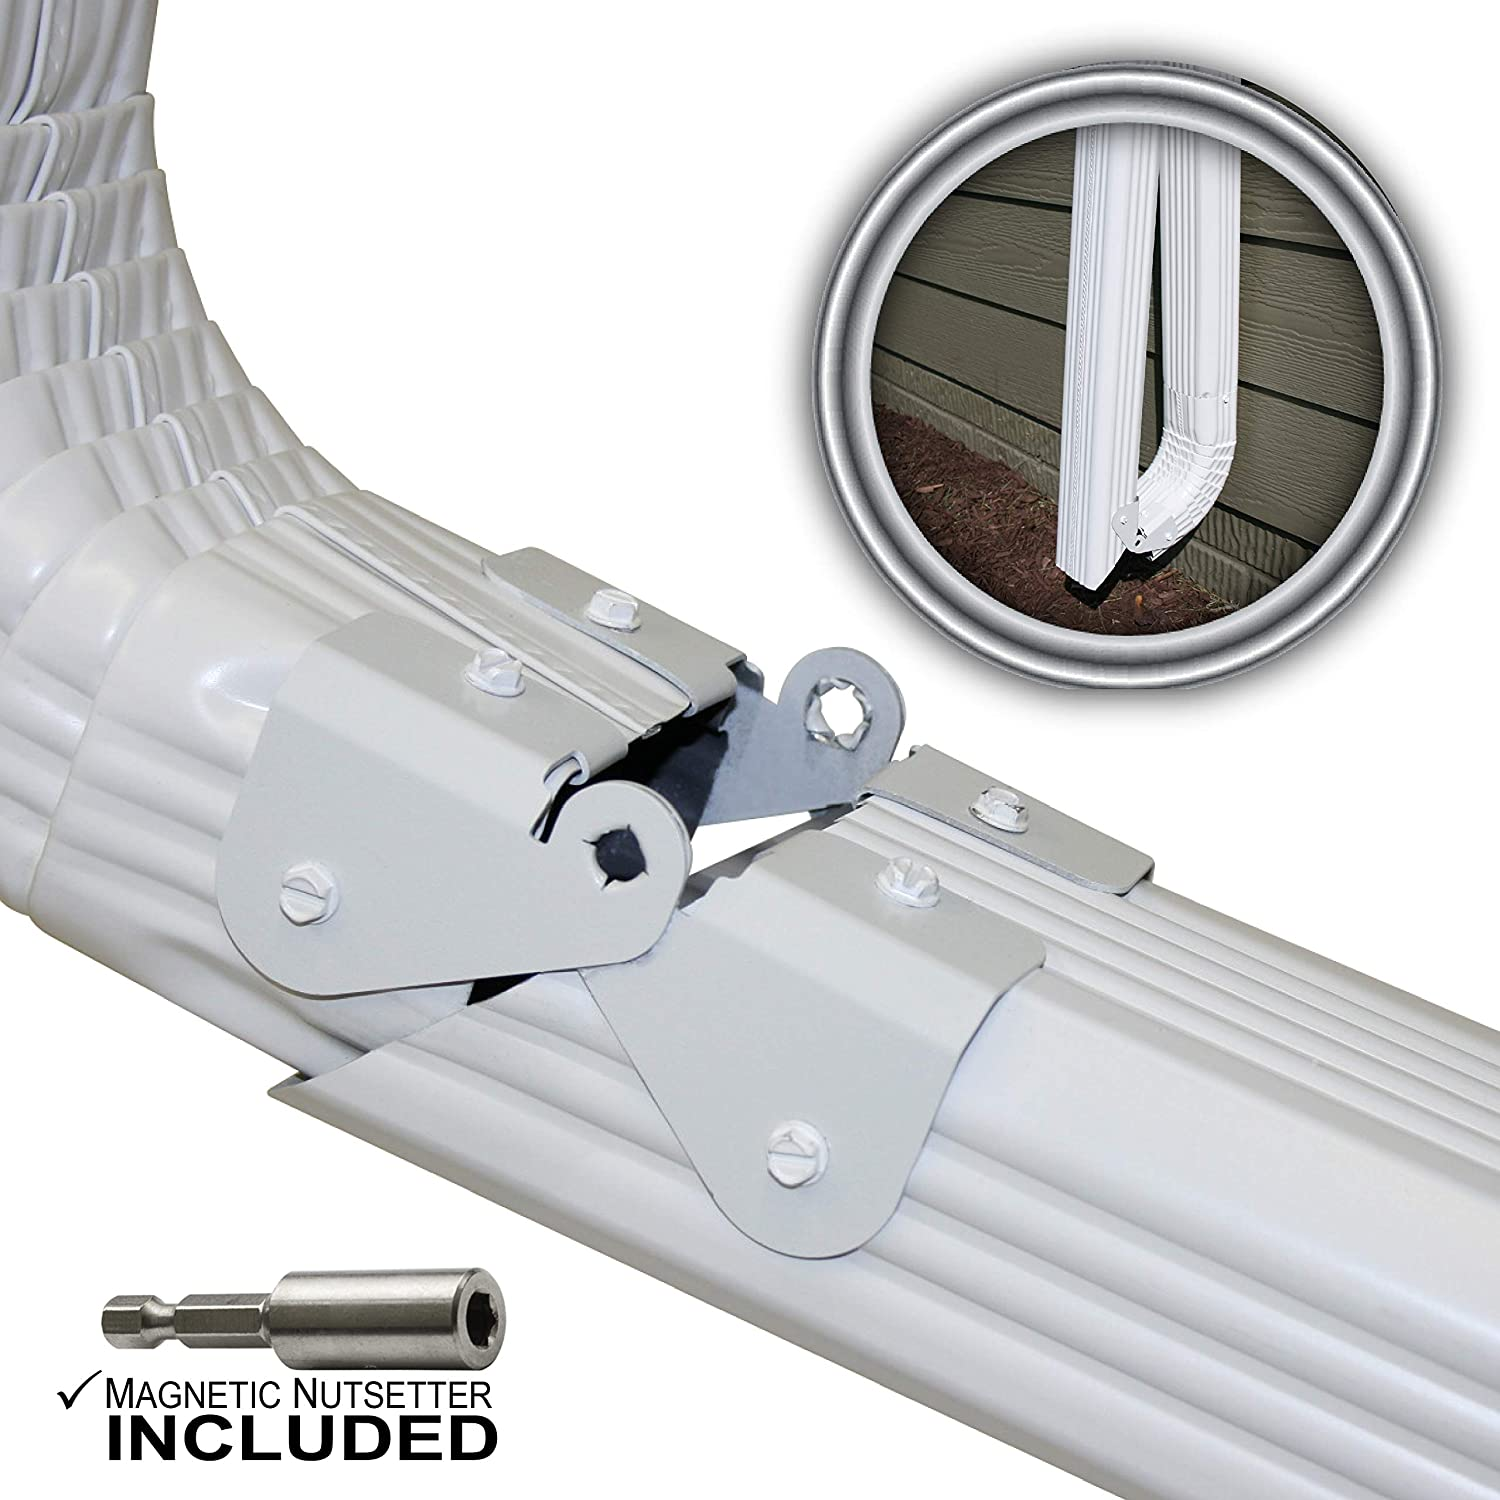 Zip Hinge 3 Pack Plus | 1-6 Packs of Gutter Extension Hinges w/Clasp + Magnetic Nutsetter | DIY Installation on Any Size Rectangle or Square Downspout